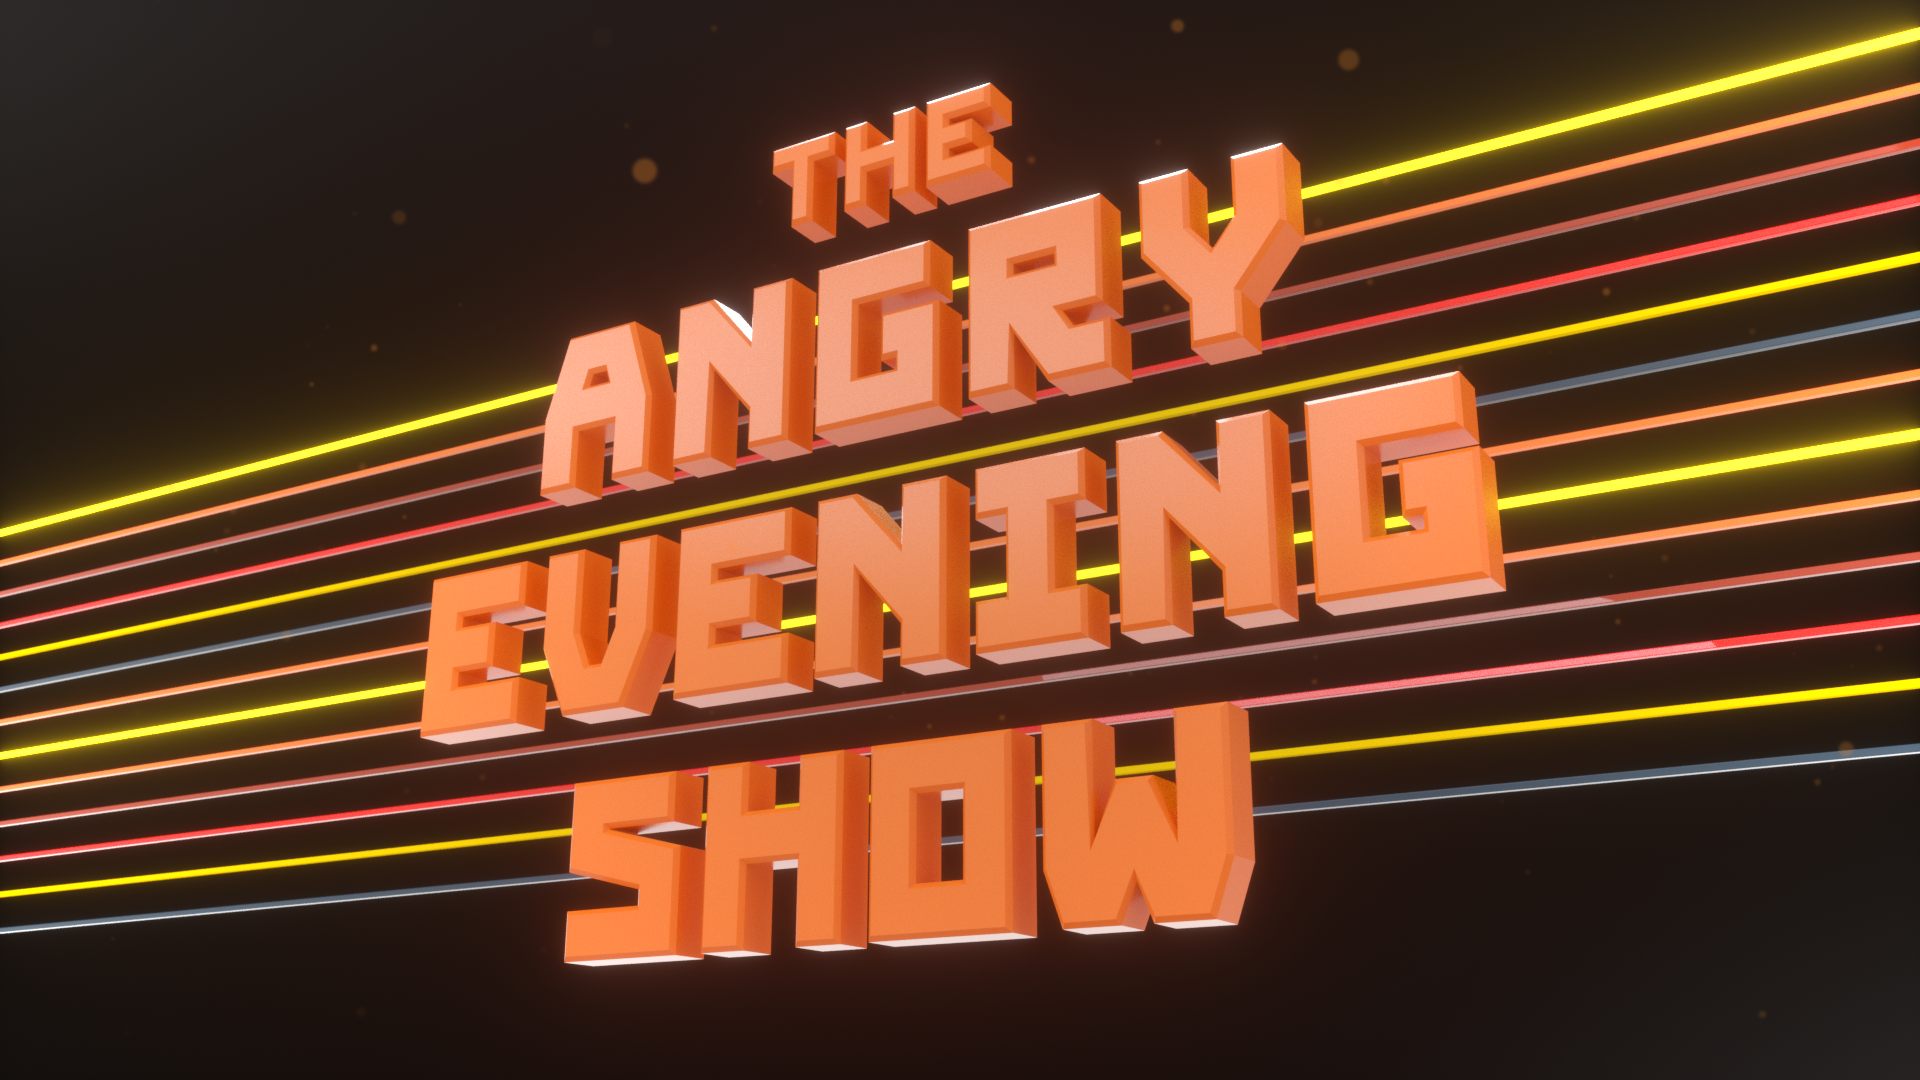 the angry evening show 0001 end b 0001 (00060).png